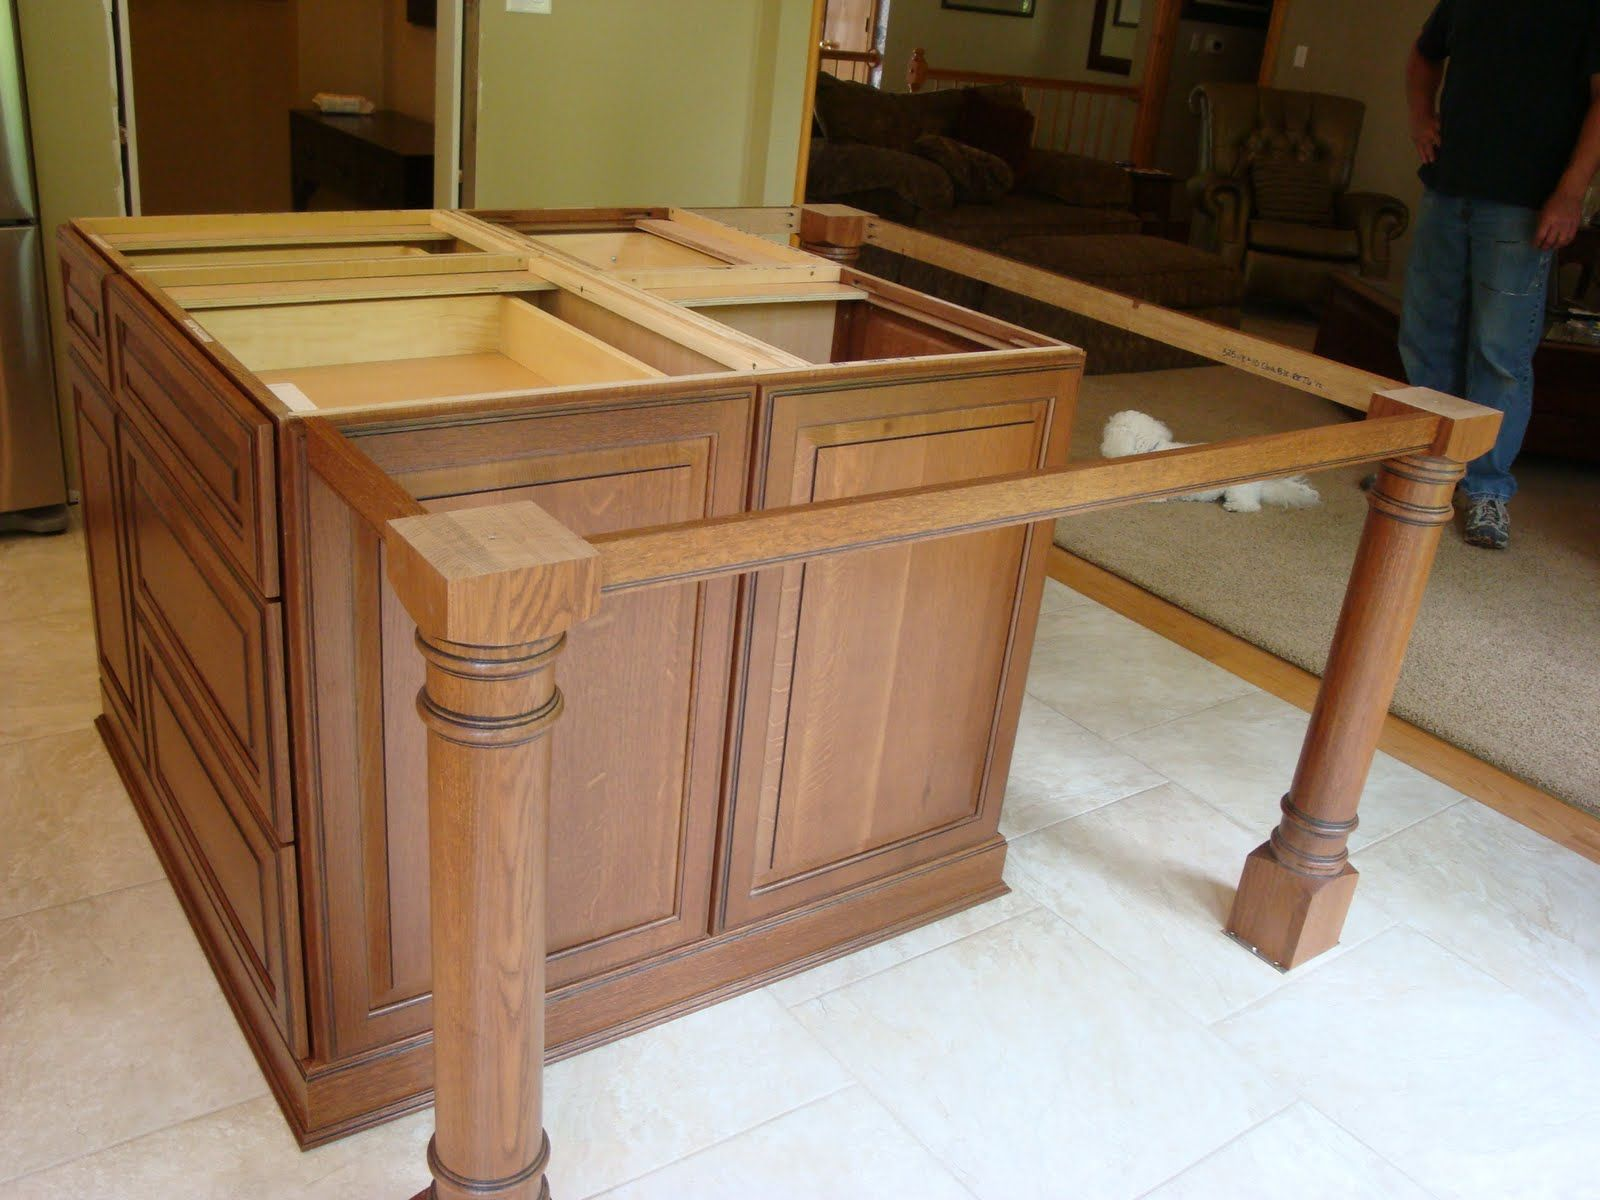 Show me your counter overhang for seating Kitchens Forum